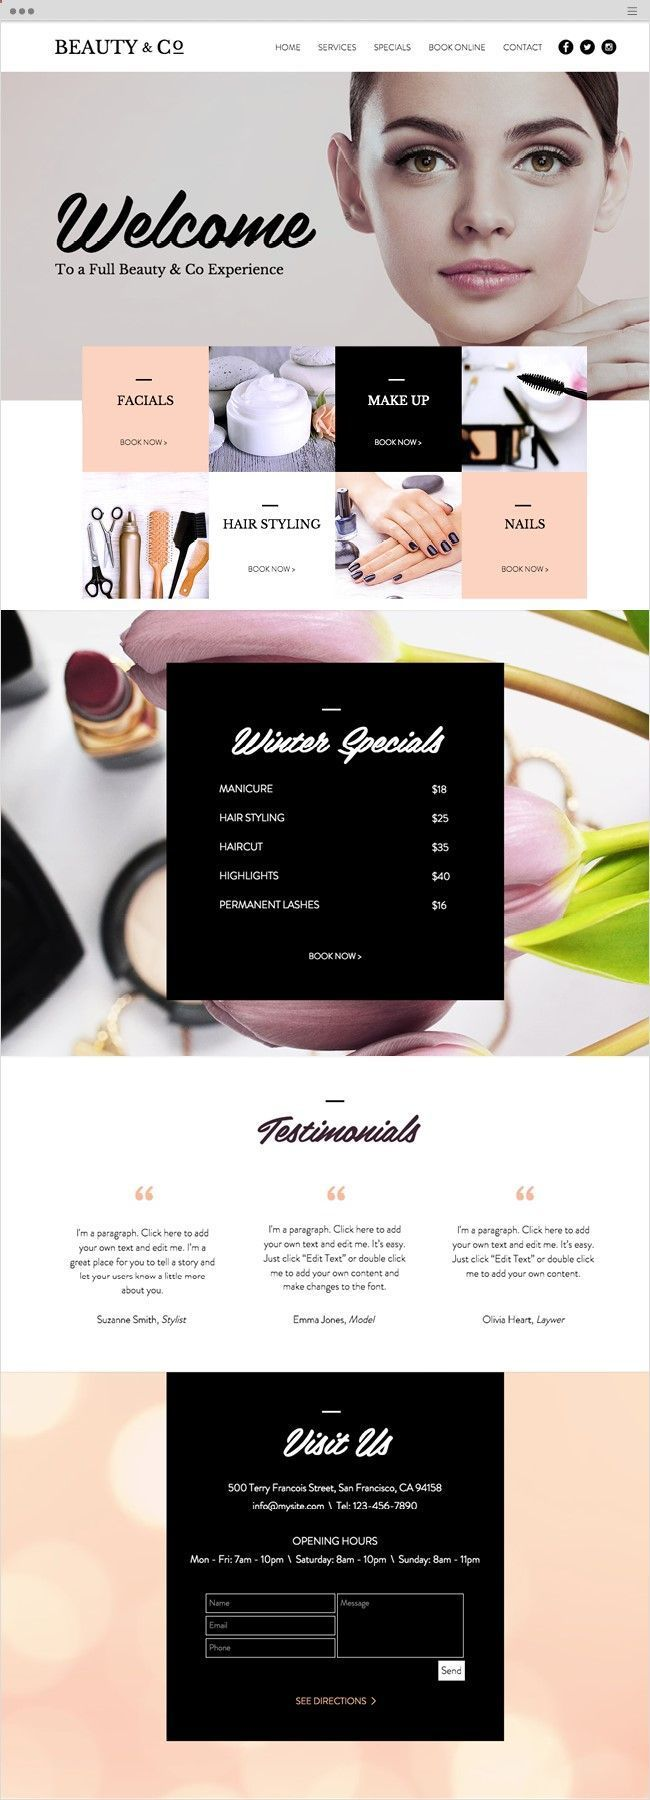 Beauty Salon Website Template Wix Website The Easiest Way To Create A Website Try It For Free Wix Website Design Layout Web Layout Design Website Design